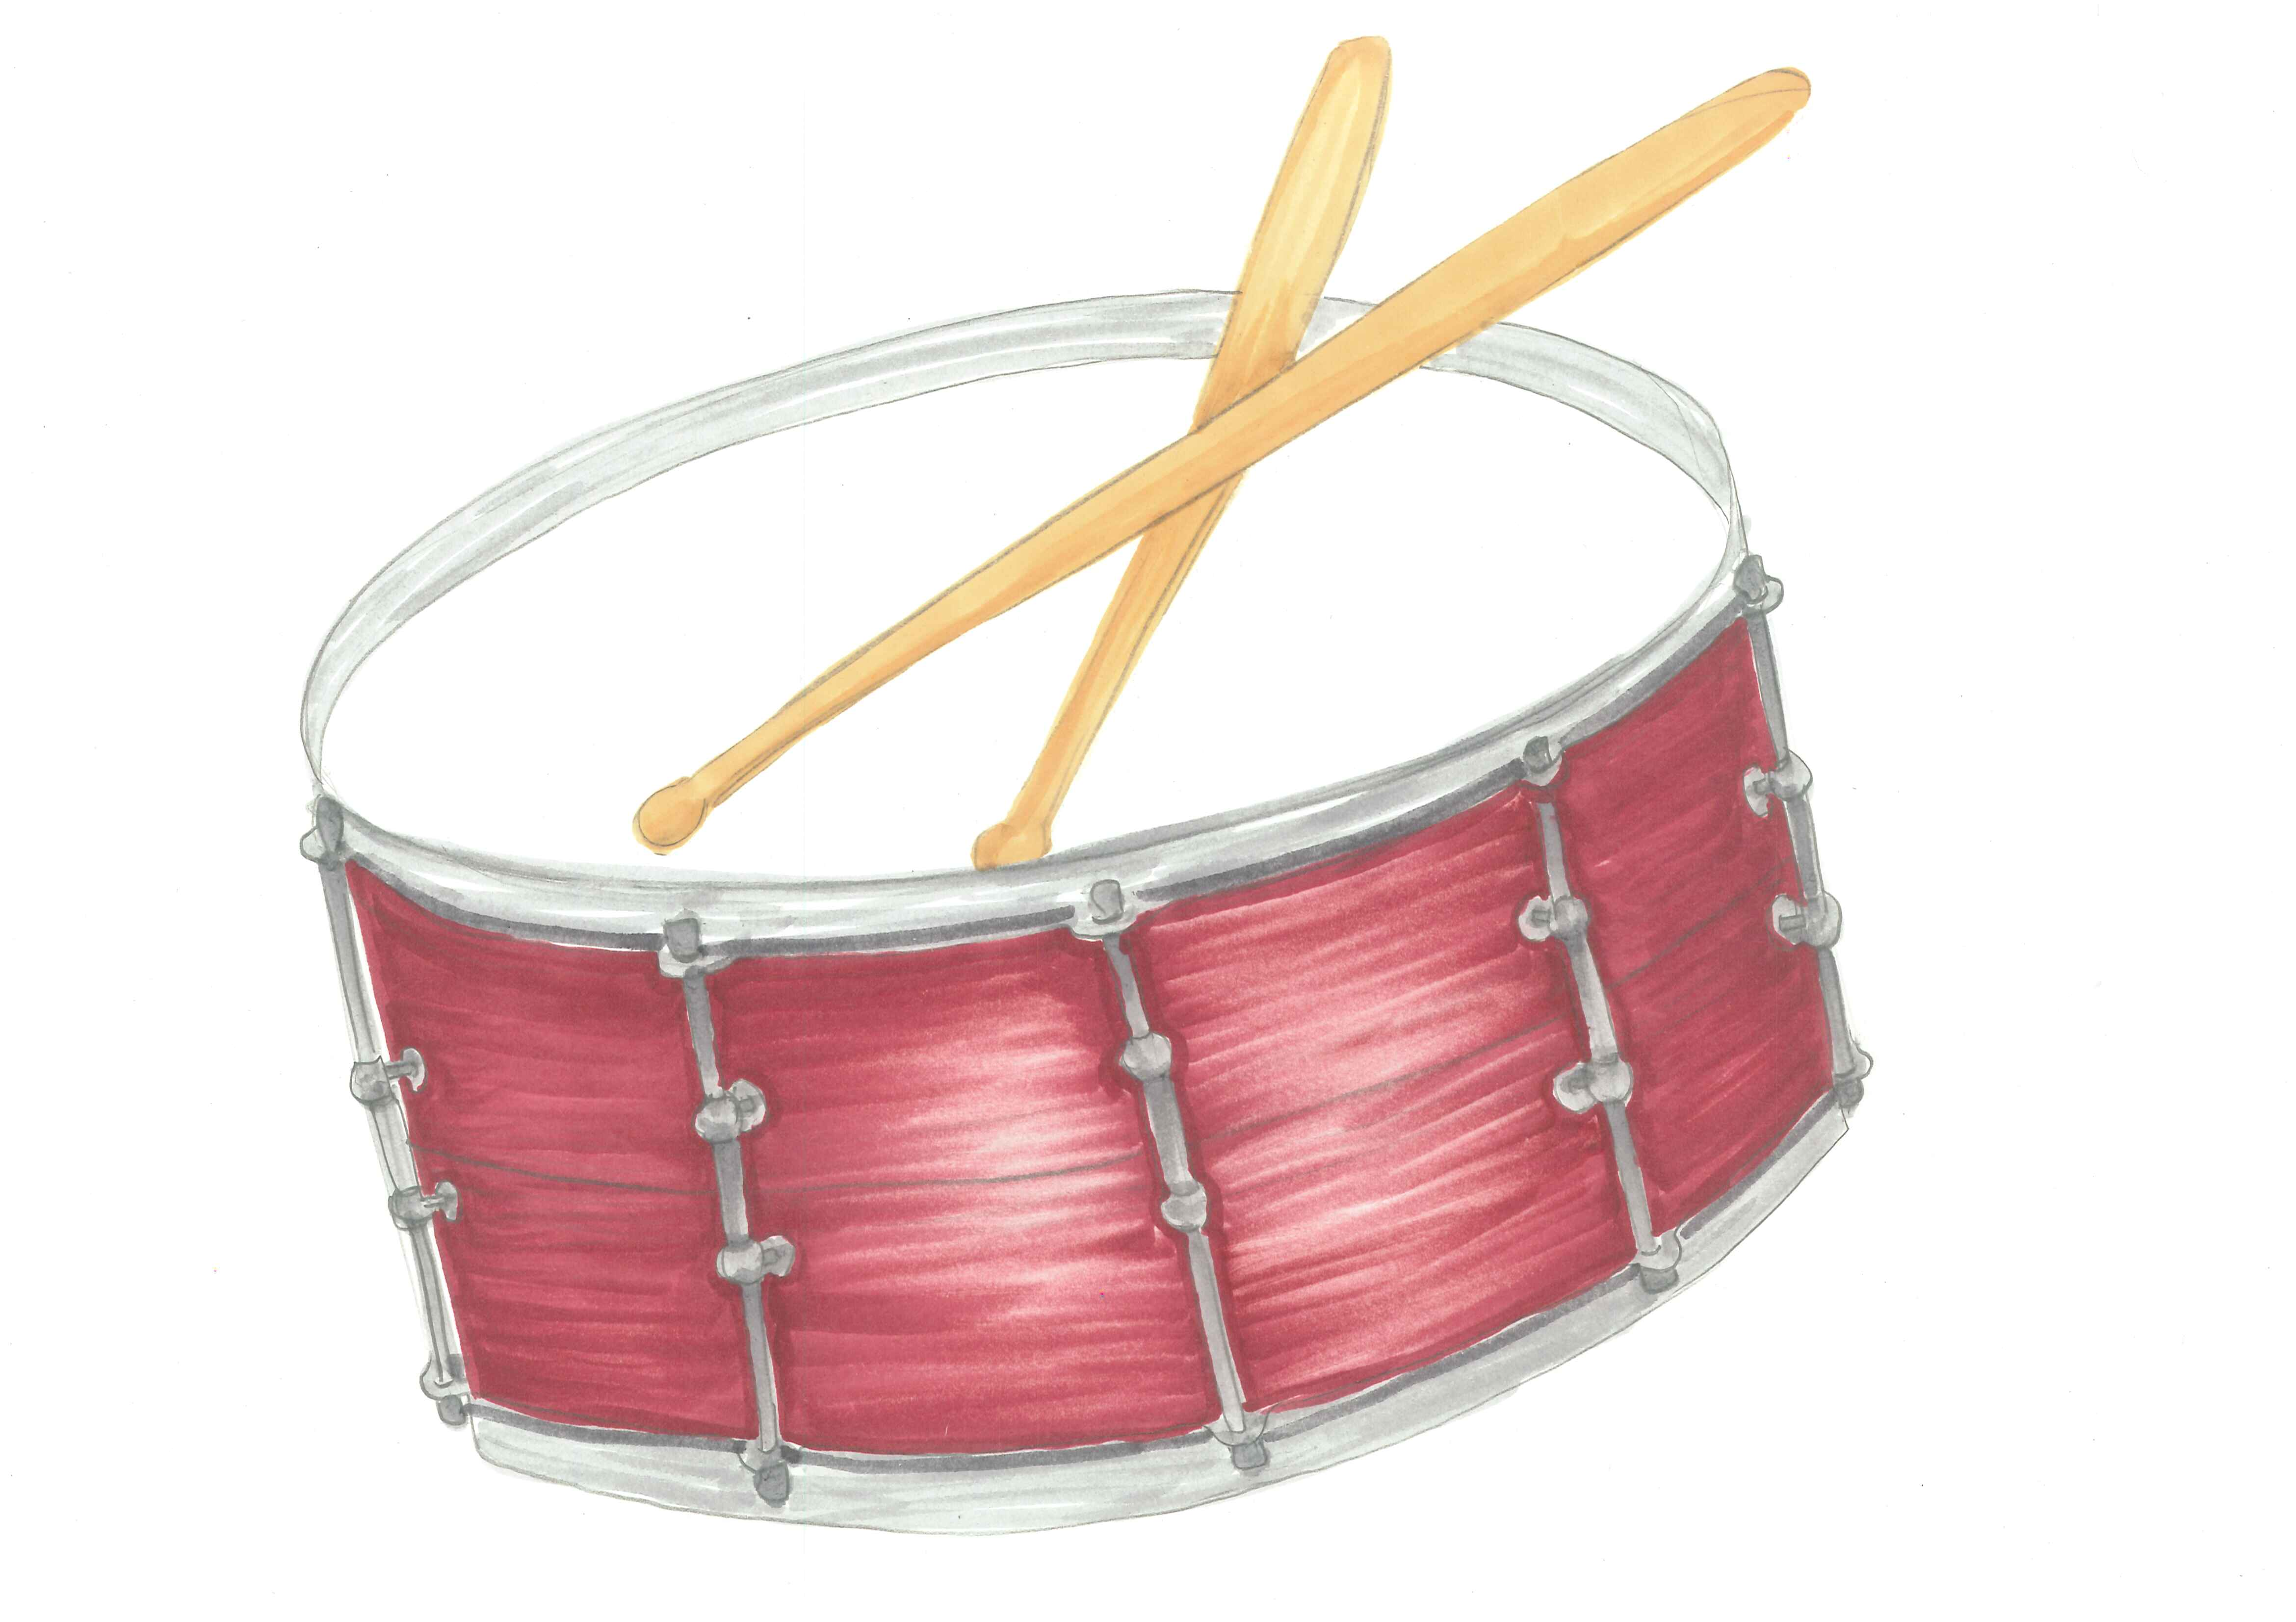 Free Snare Drum Cliparts, Download Free Clip Art, Free Clip.